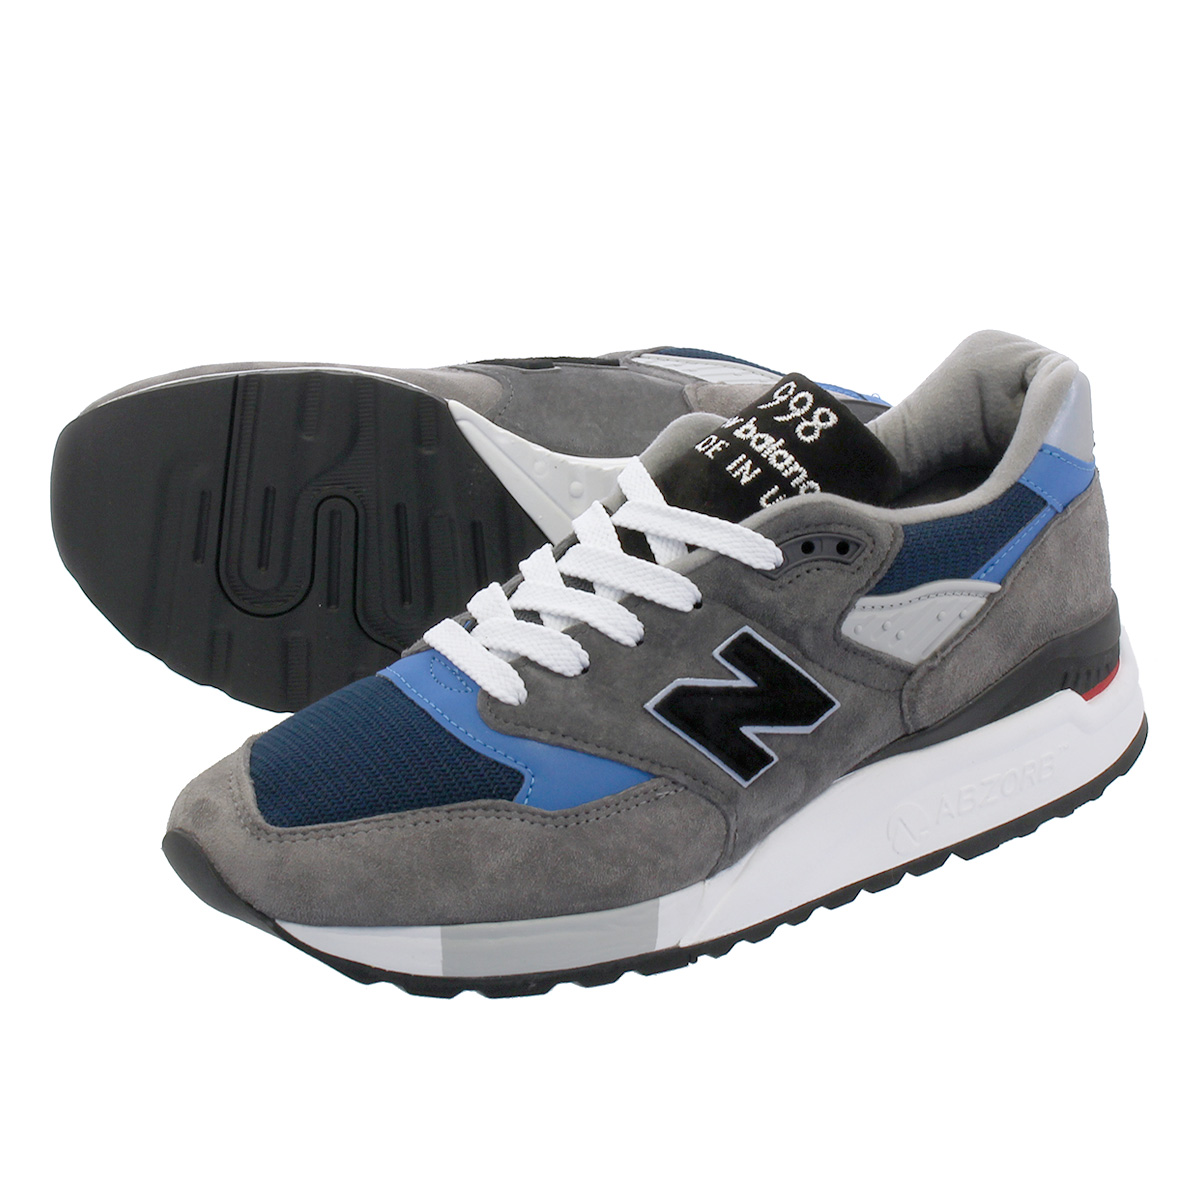 NEW BALANCE M998NF 【MADE IN U.S.A.】 【Dワイズ】 ニューバランス M 998 NF GRAY/BLUE